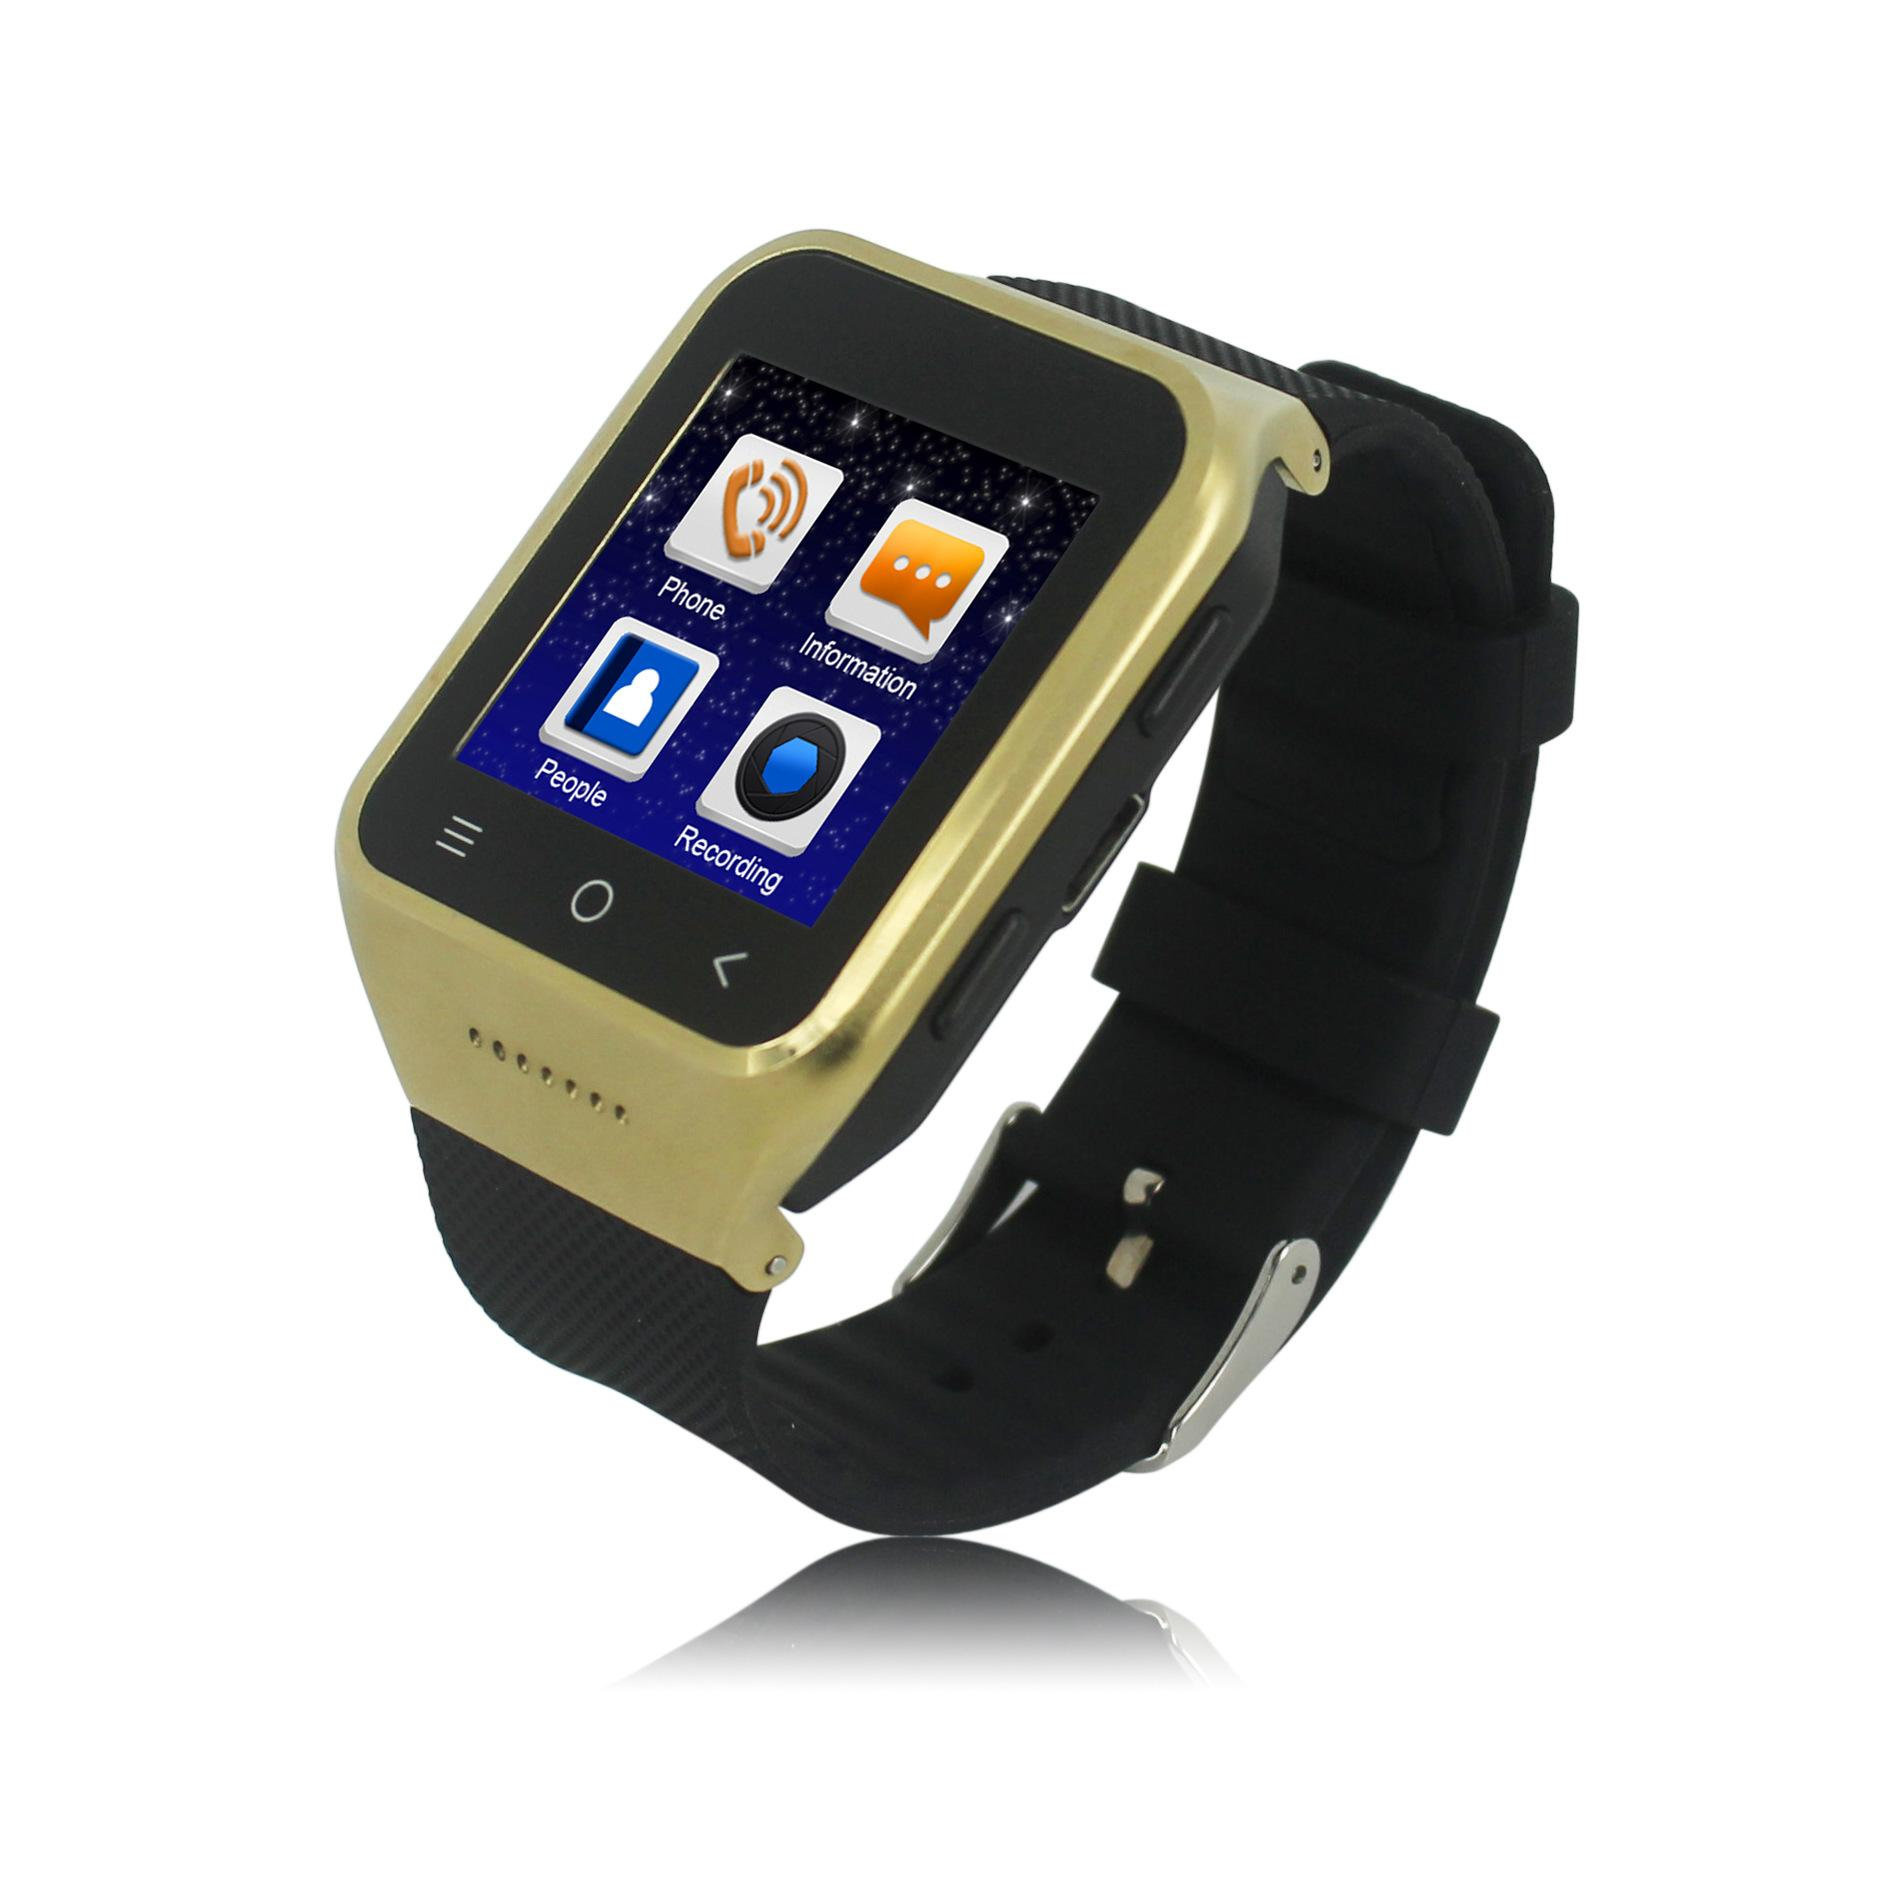 gsm apple watches in ebay samsung phone sim phones watch accessories android smart bluetooth cell kingdo pin for iphone